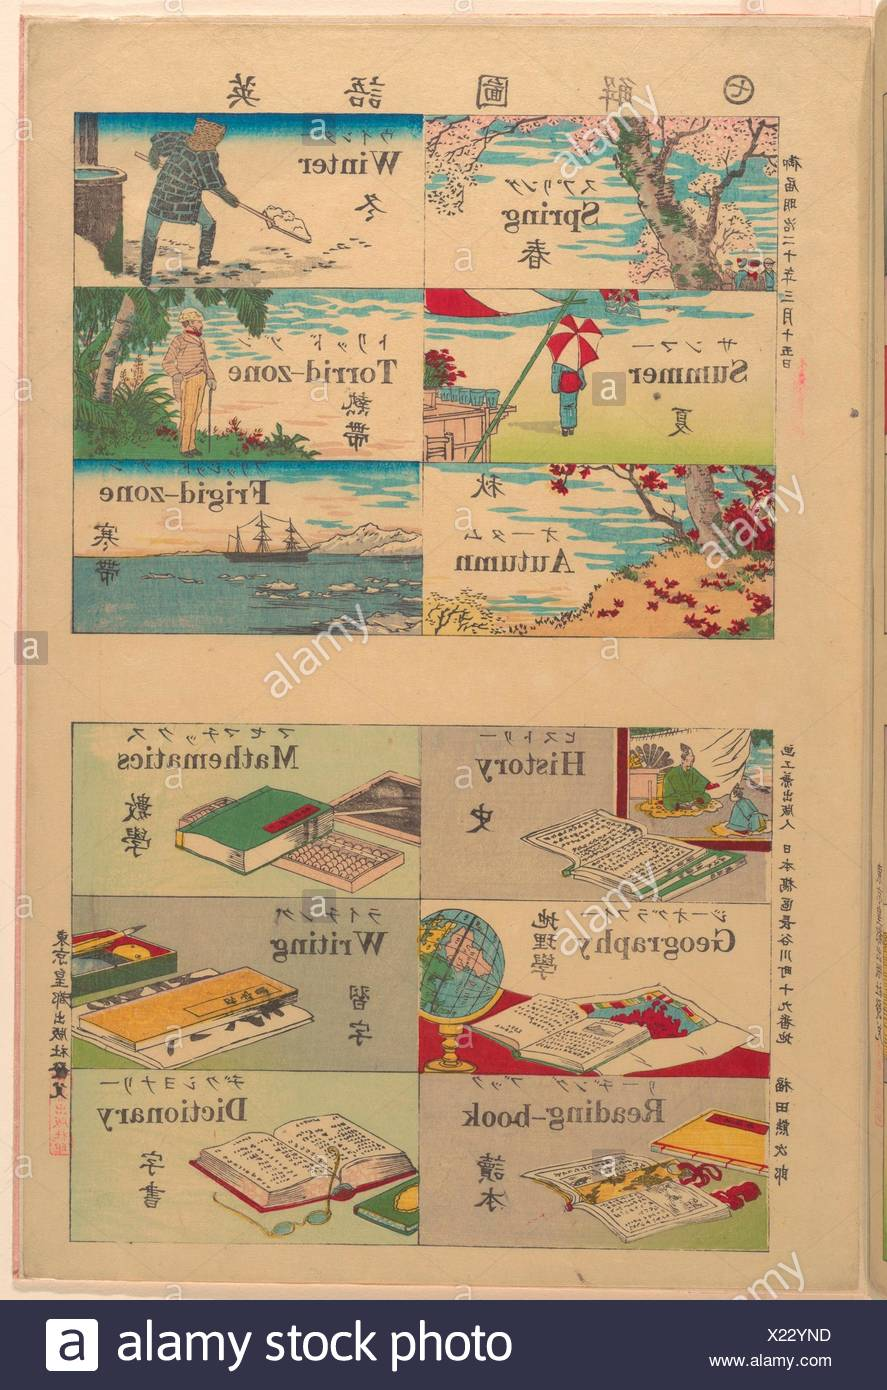 Dictionnaire Illustré. Artiste : l'Artiste non identifié ; période : période Meiji (1868-1912) ; Date : 1887 ; Culture : Japon ; moyen : estampe Polychrome ; Photo Stock